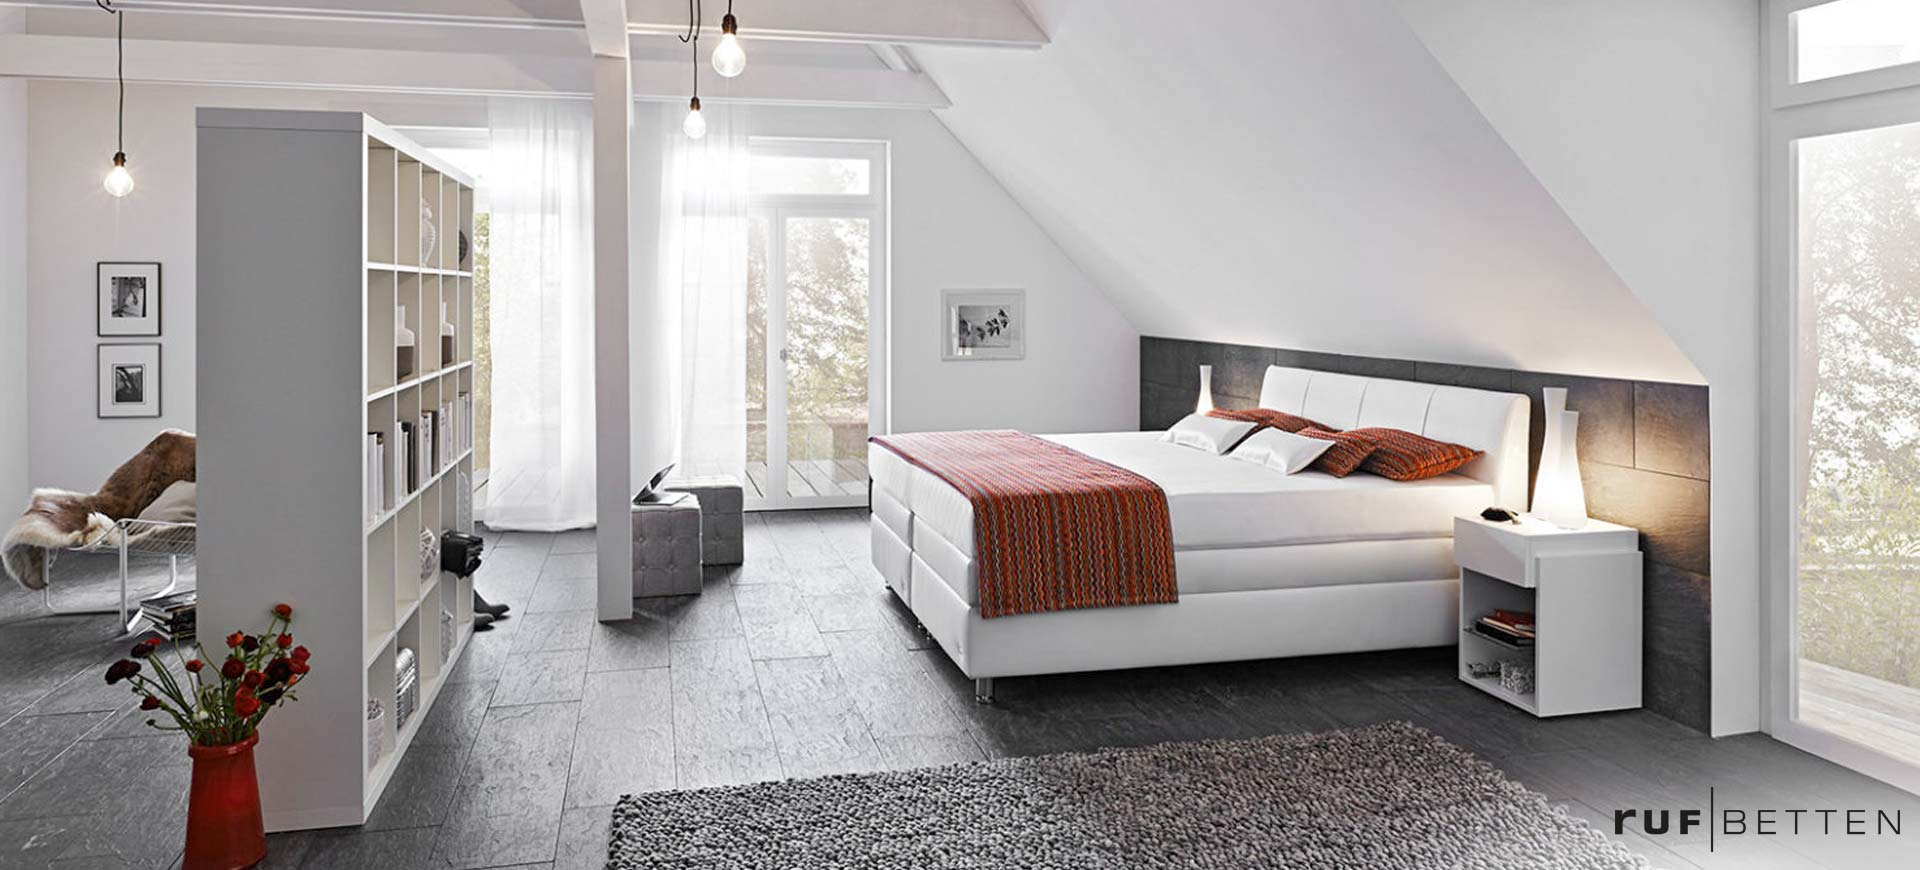 m belmarkt m nster ruf boxspring betten in m nster b darmstadt nahe dieburg und frankfurt a m. Black Bedroom Furniture Sets. Home Design Ideas